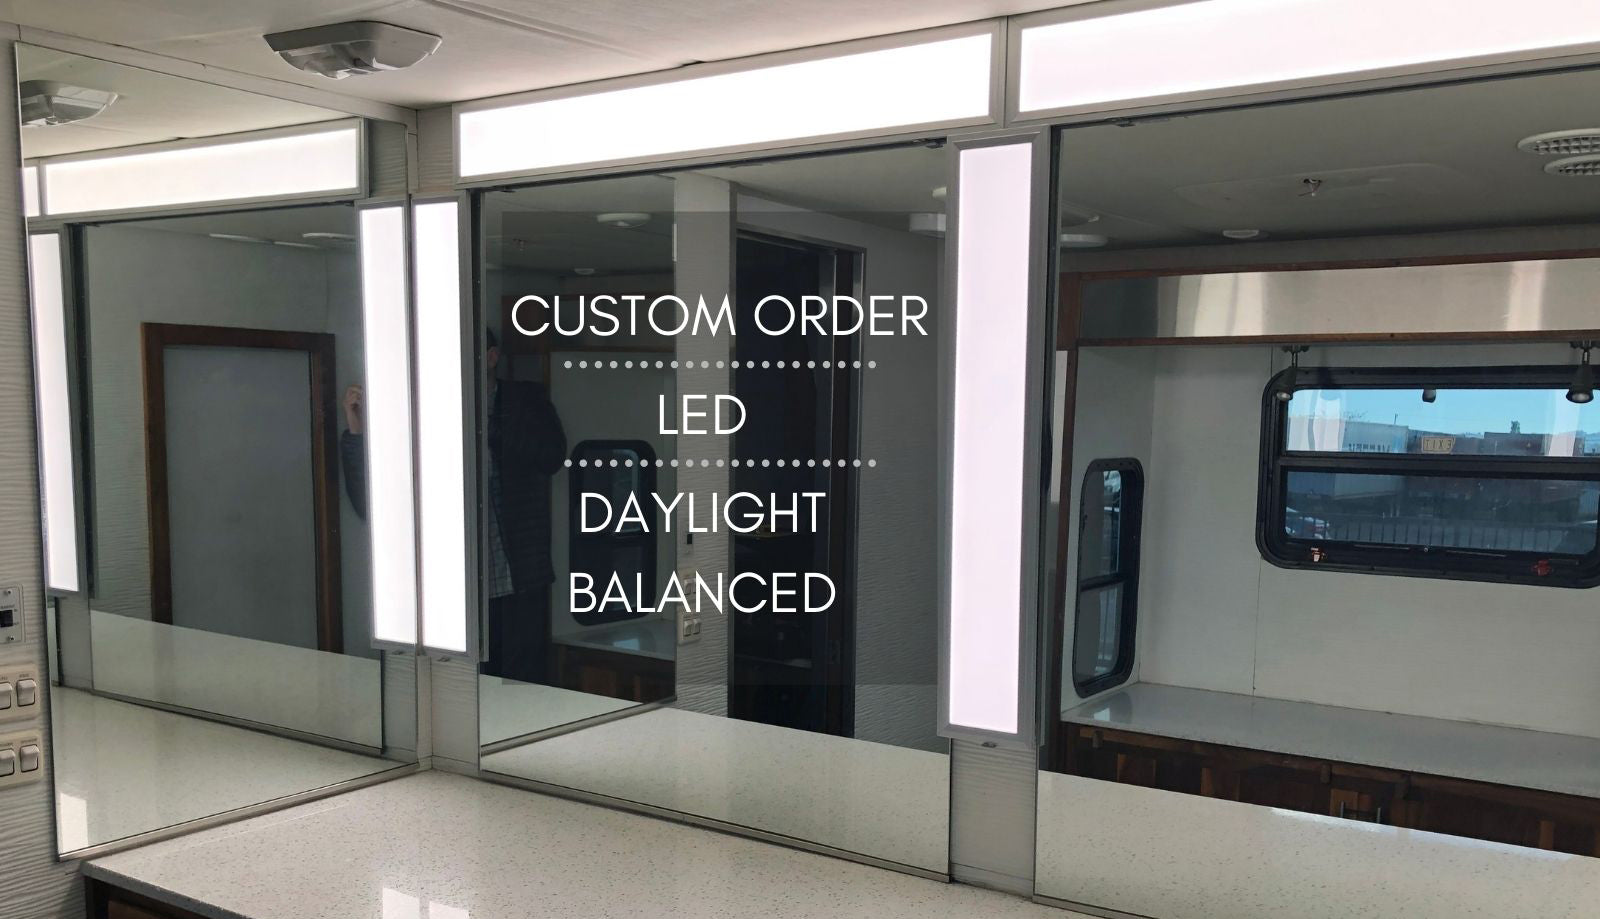 Custom order definitions from The Makeup Light